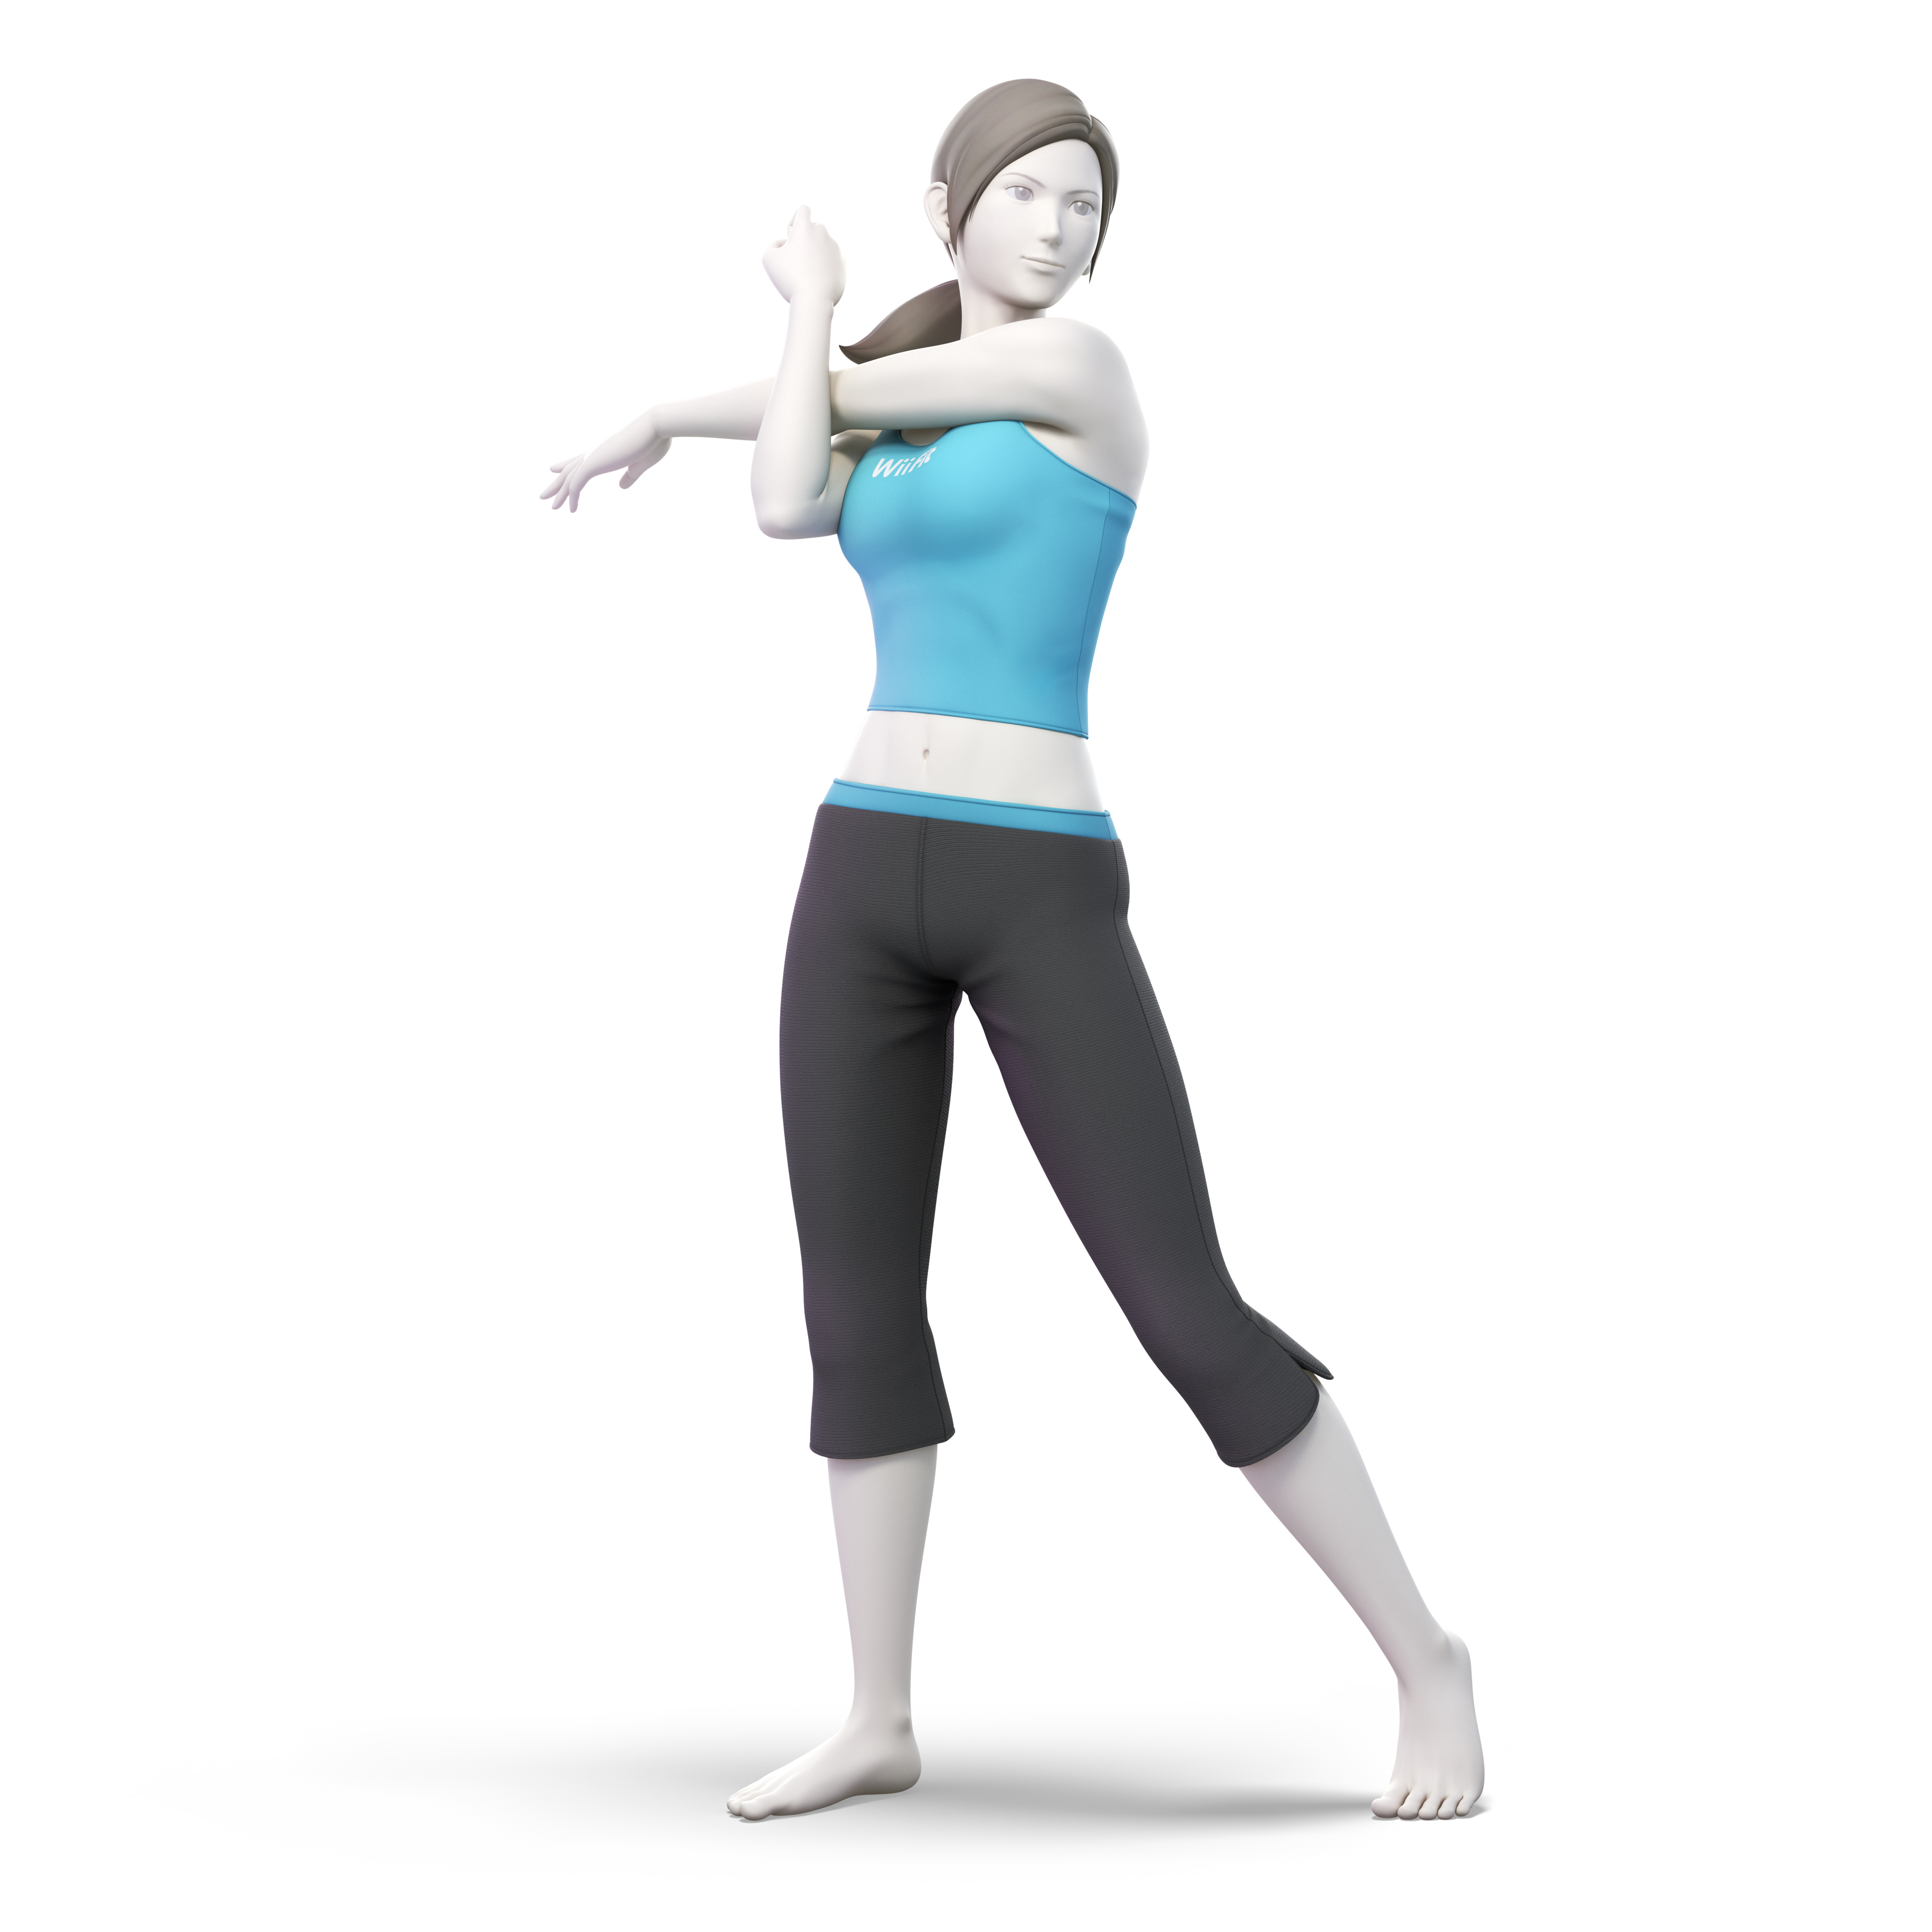 Super Smash Bros Ultimate How To Unlock Wii Fit Trainer